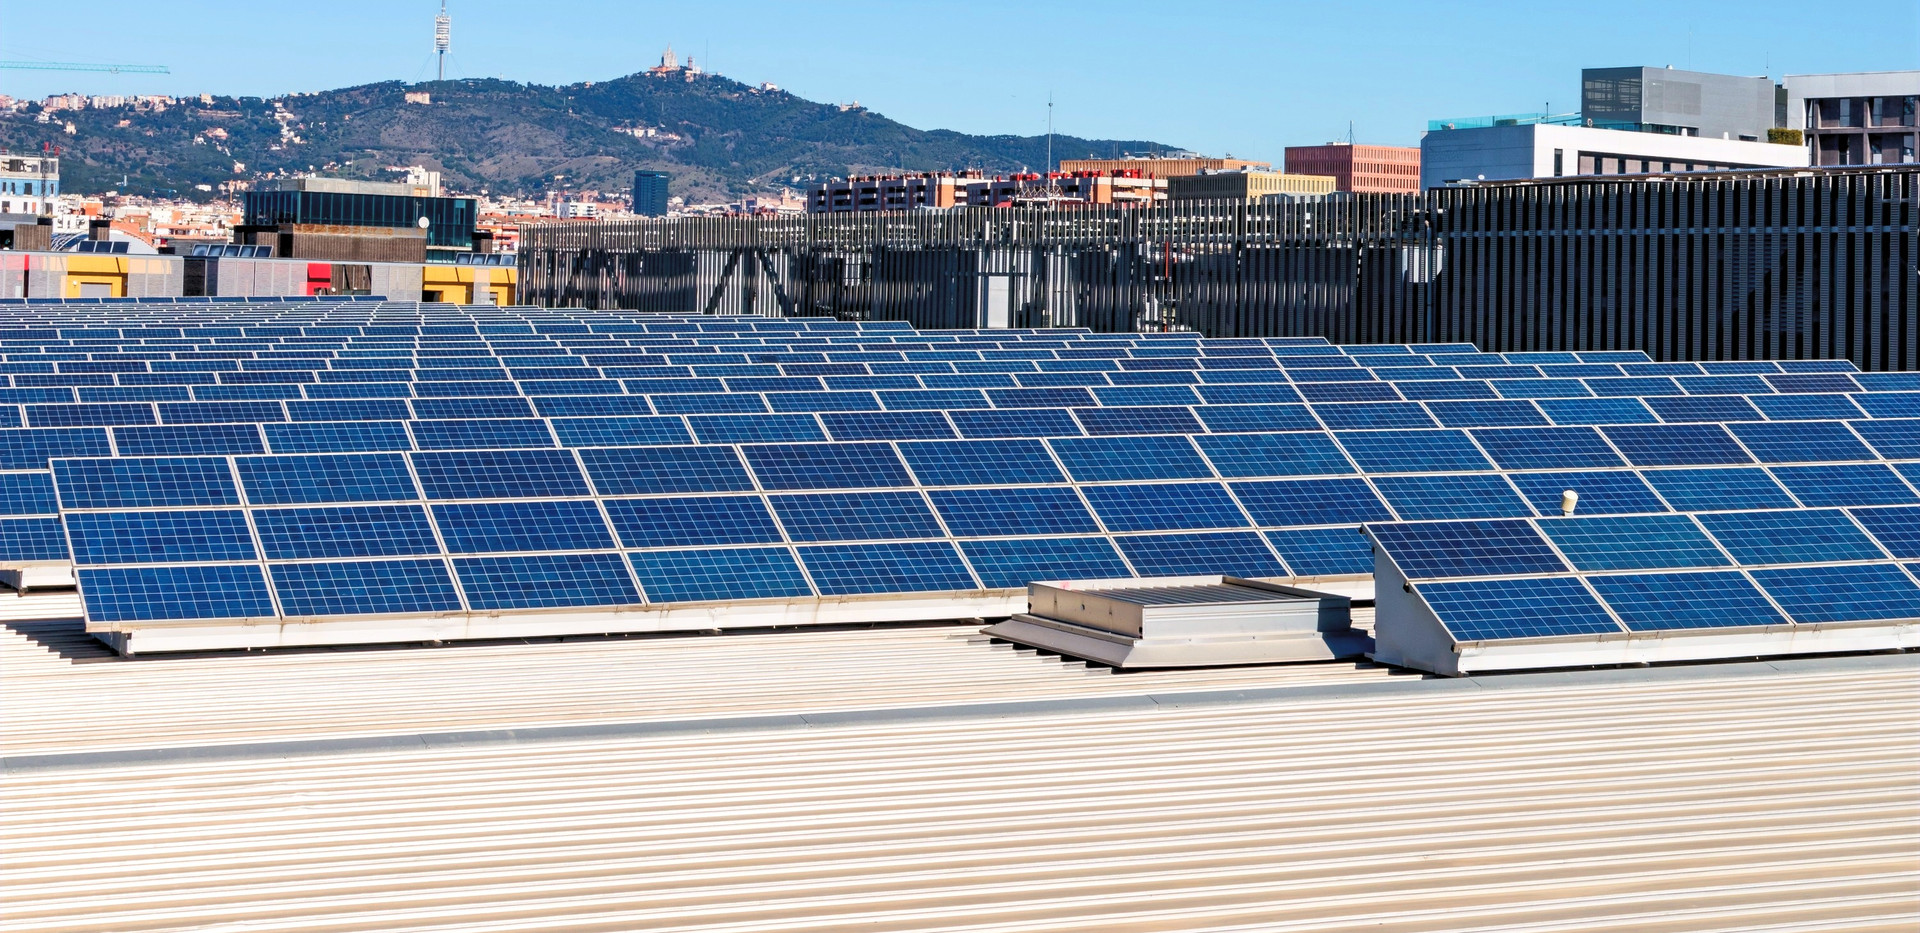 Canva%20-%20Field%20Photovoltaic%20solar